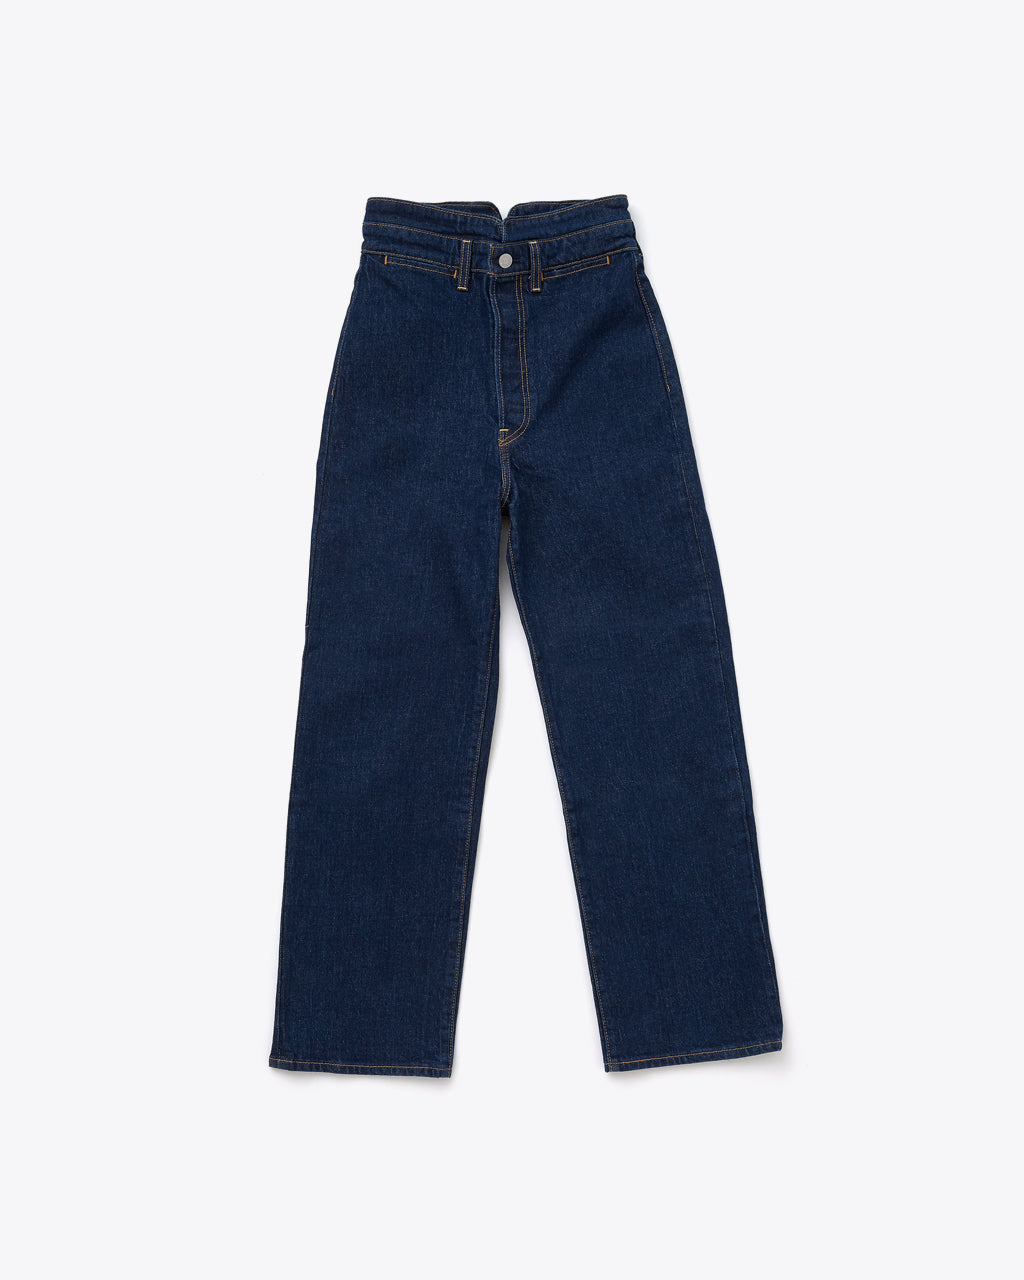 dark wash jean with a high waisted slim fit and a straight leg